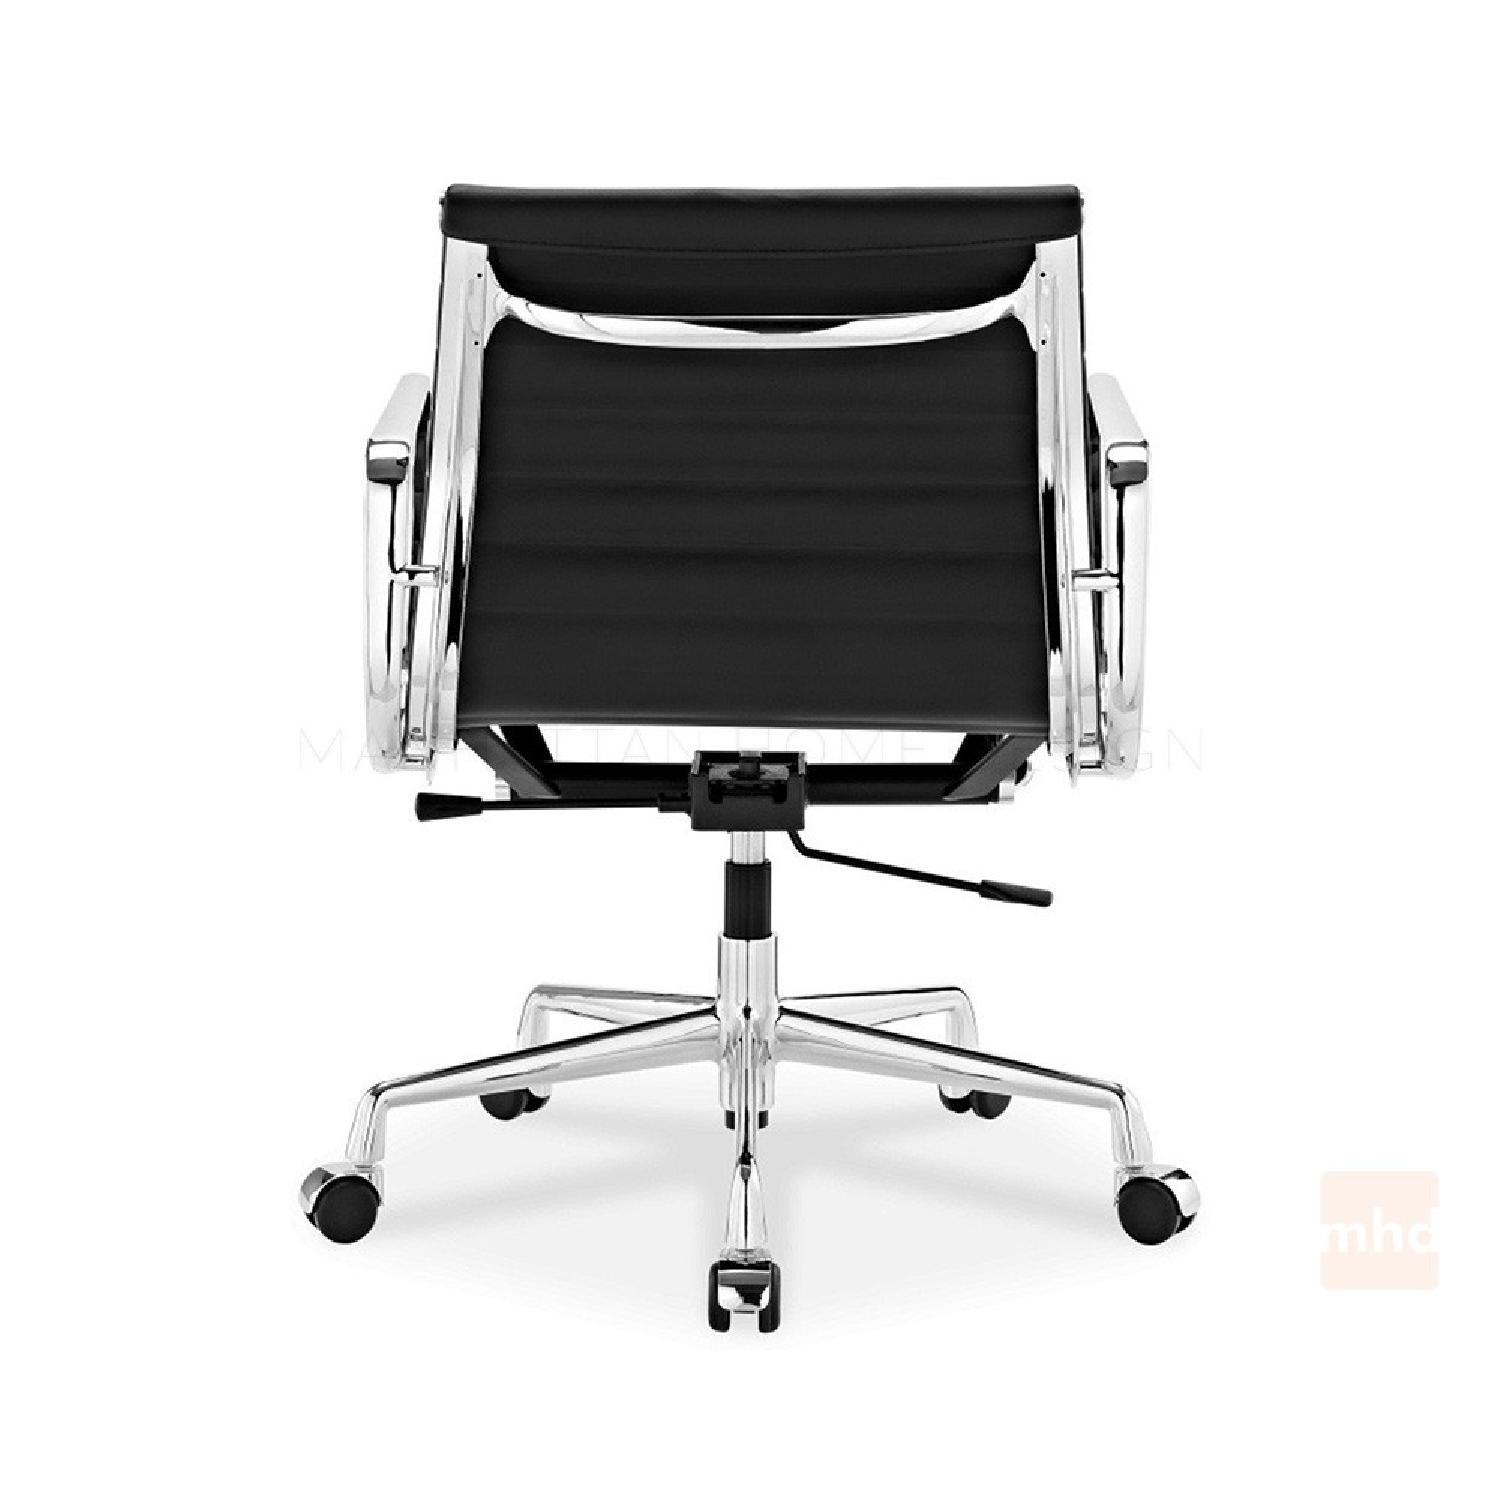 Eames Management Chair Replica in Black AptDeco